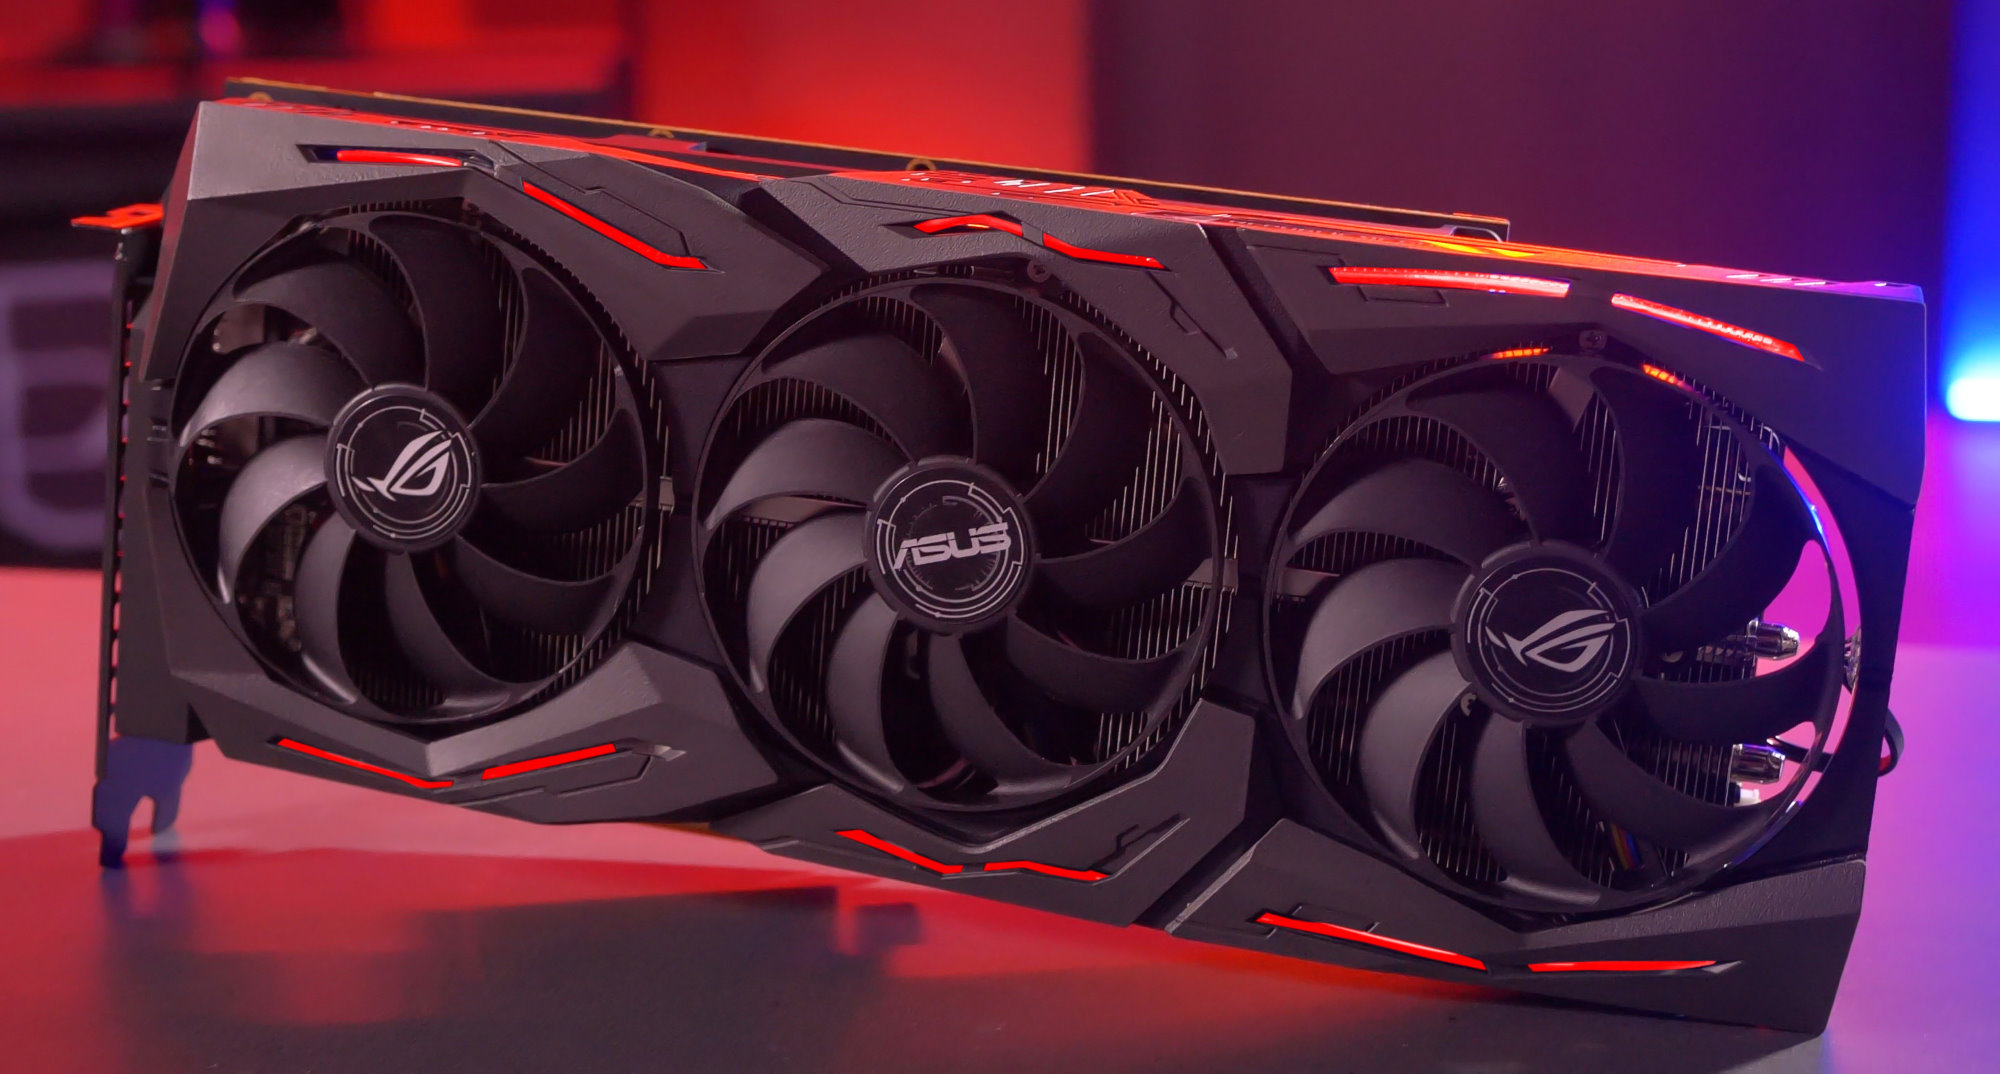 AMD Radeon RX 5700 Custom Graphics Card Pictured Once More